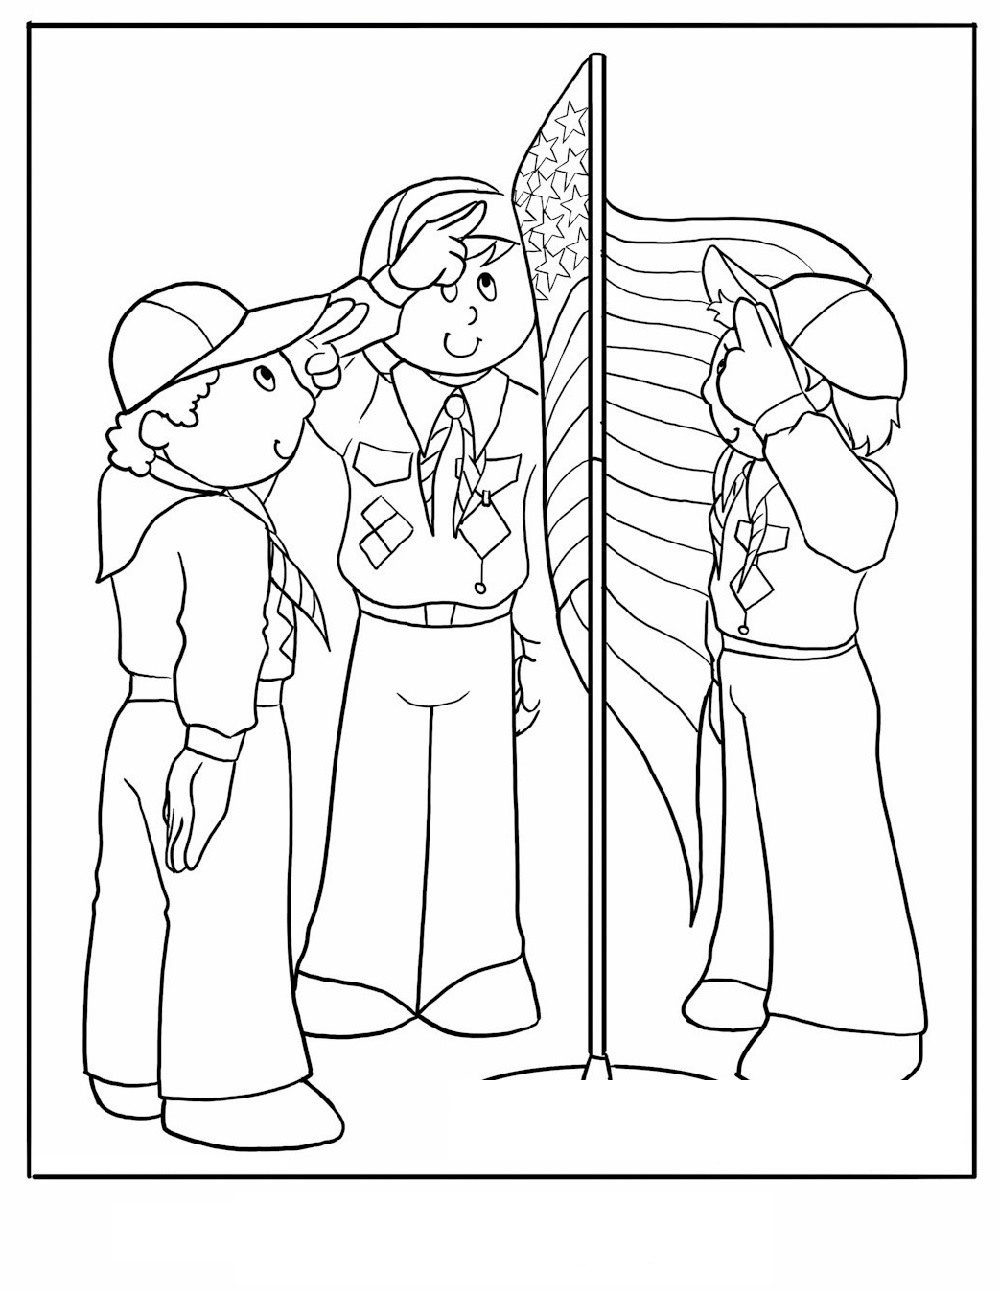 cub scout coloring pages 5